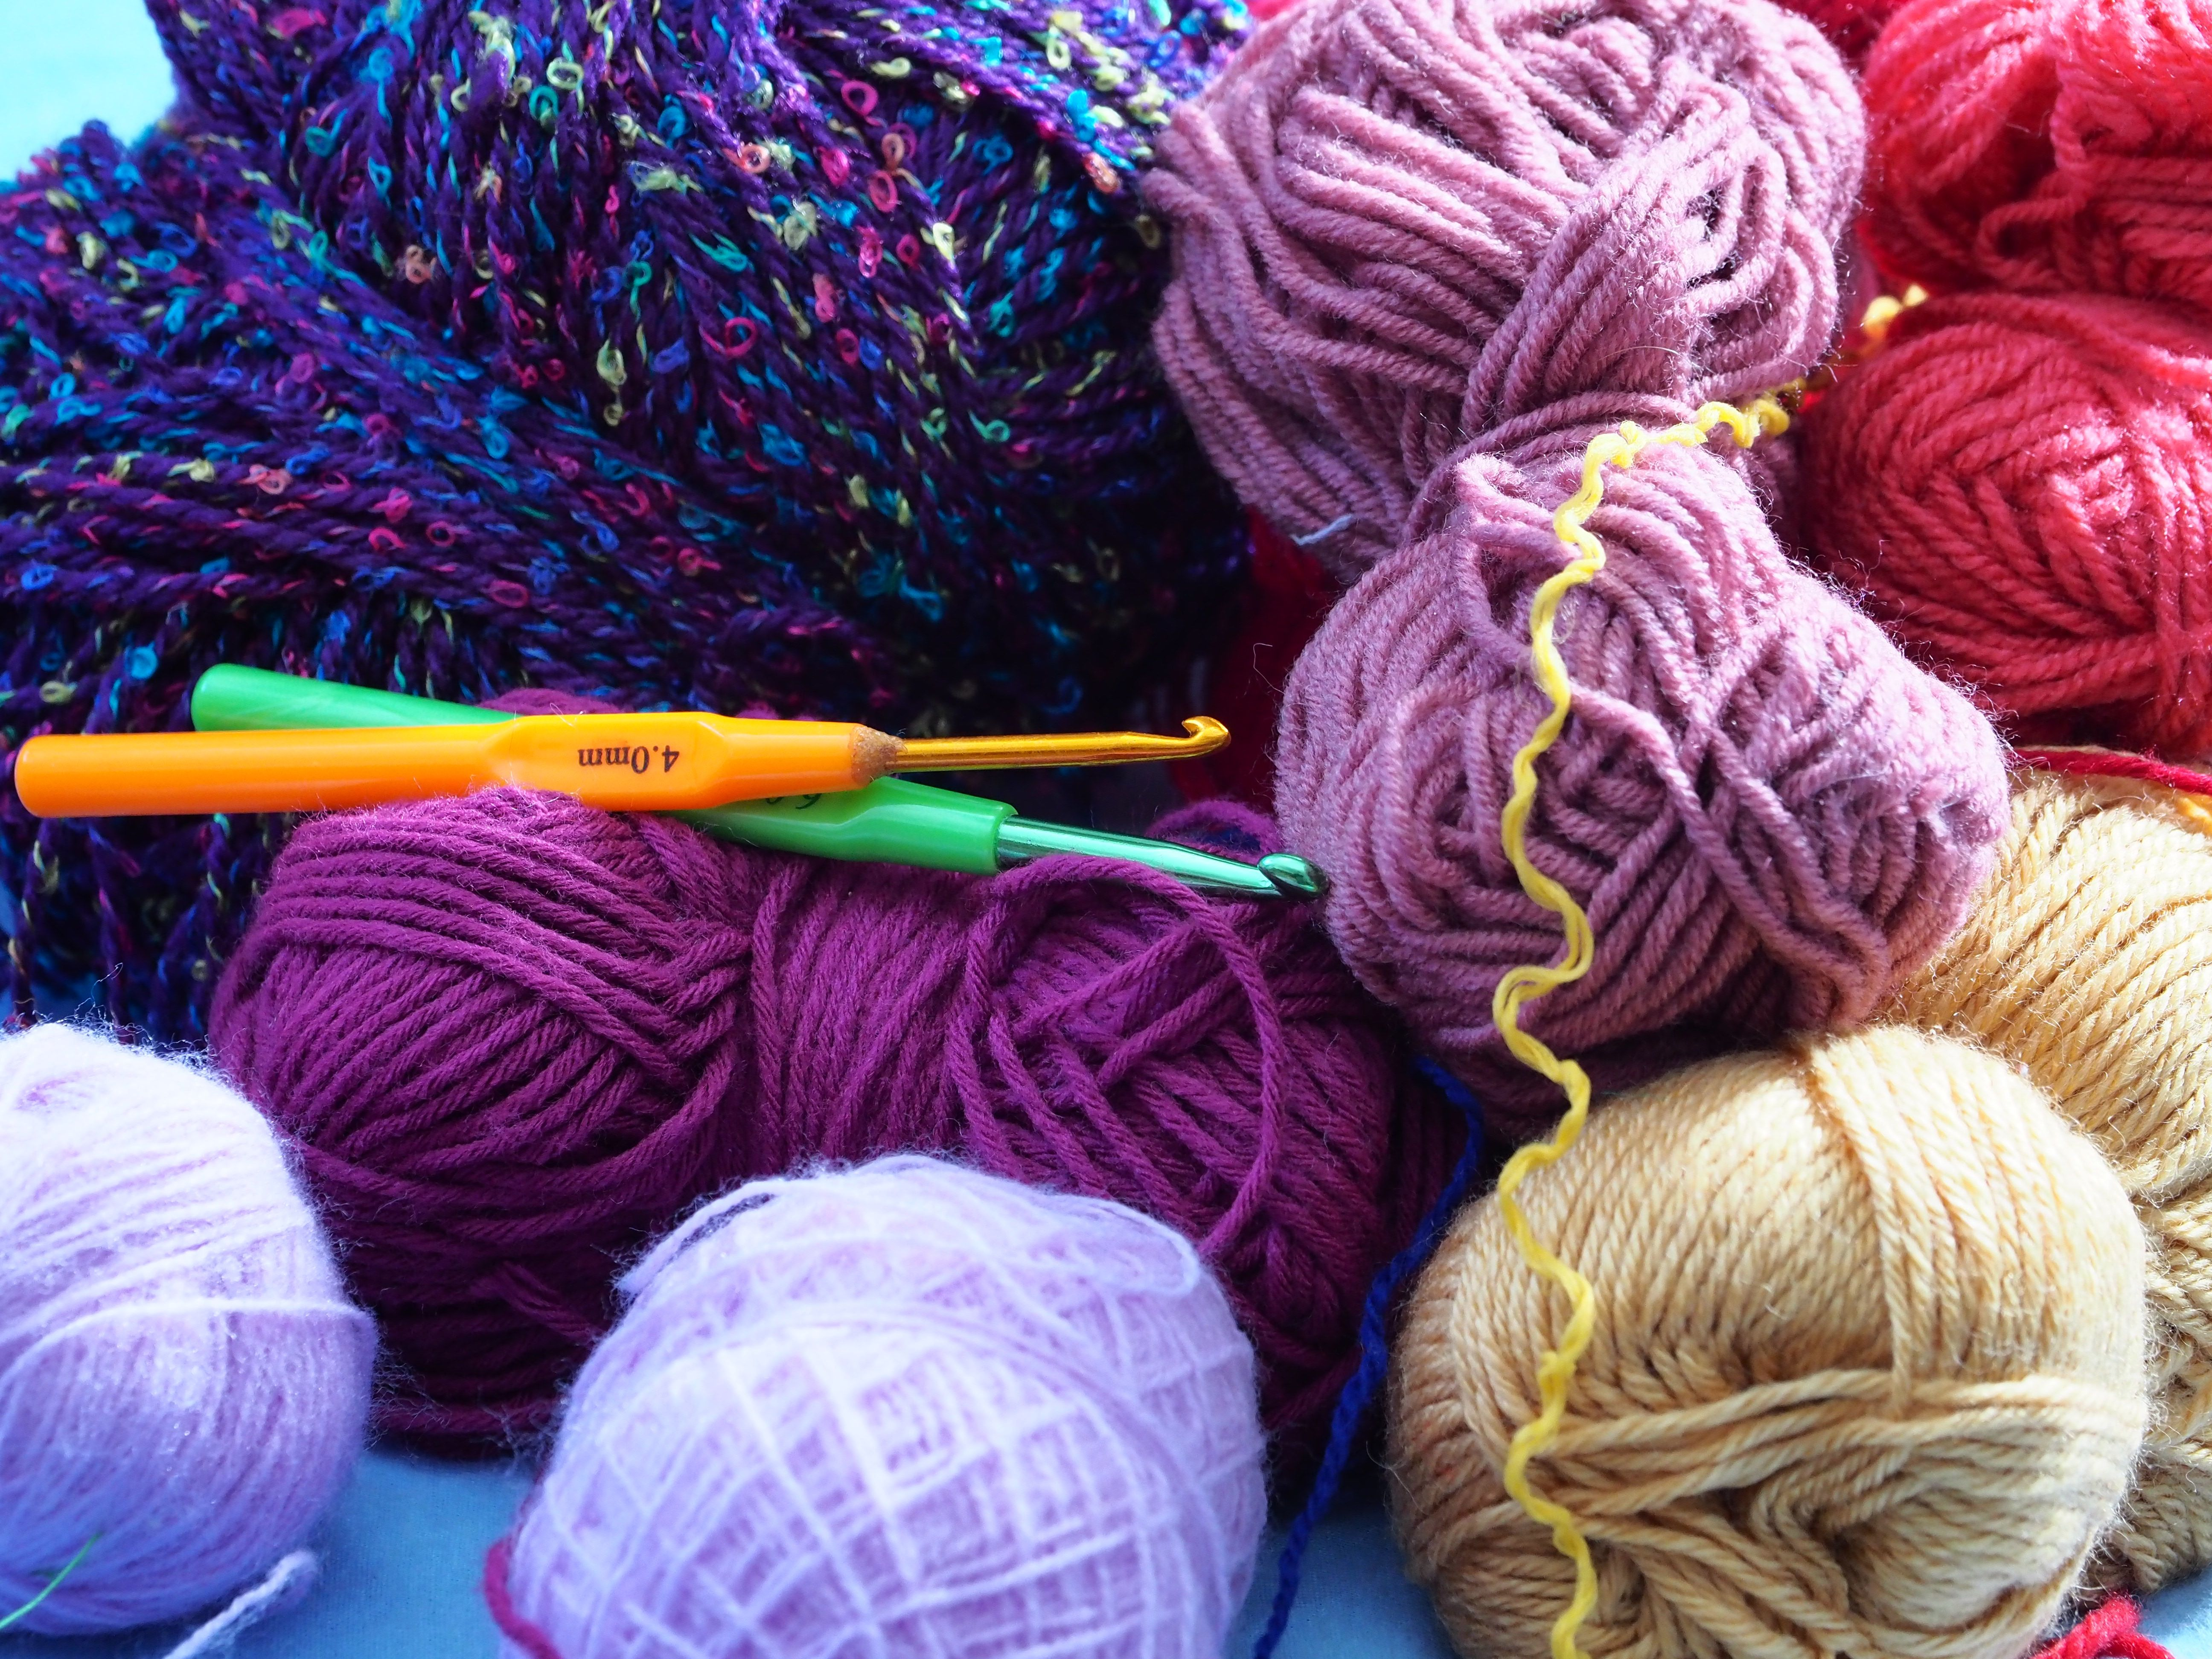 Knitting equipment, such as hooks and yarn, on a table.